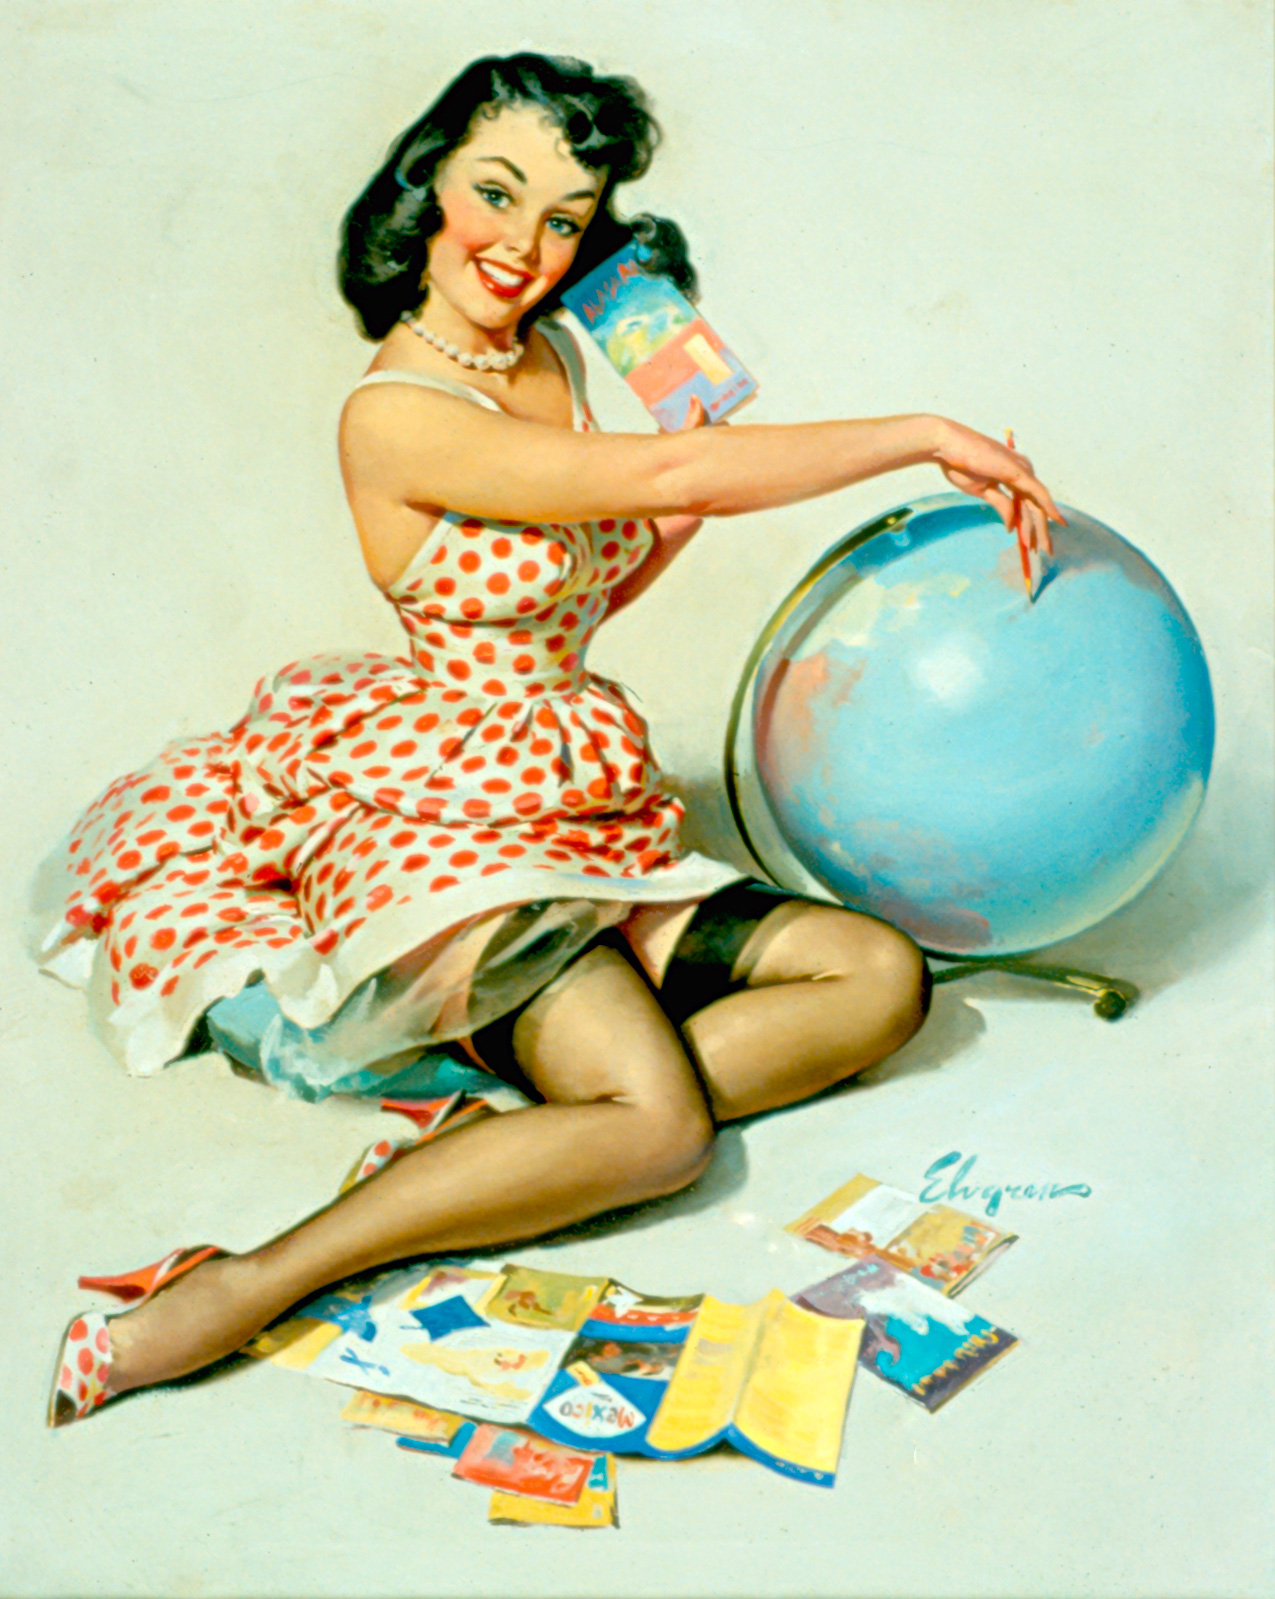 Pinups all over the world!